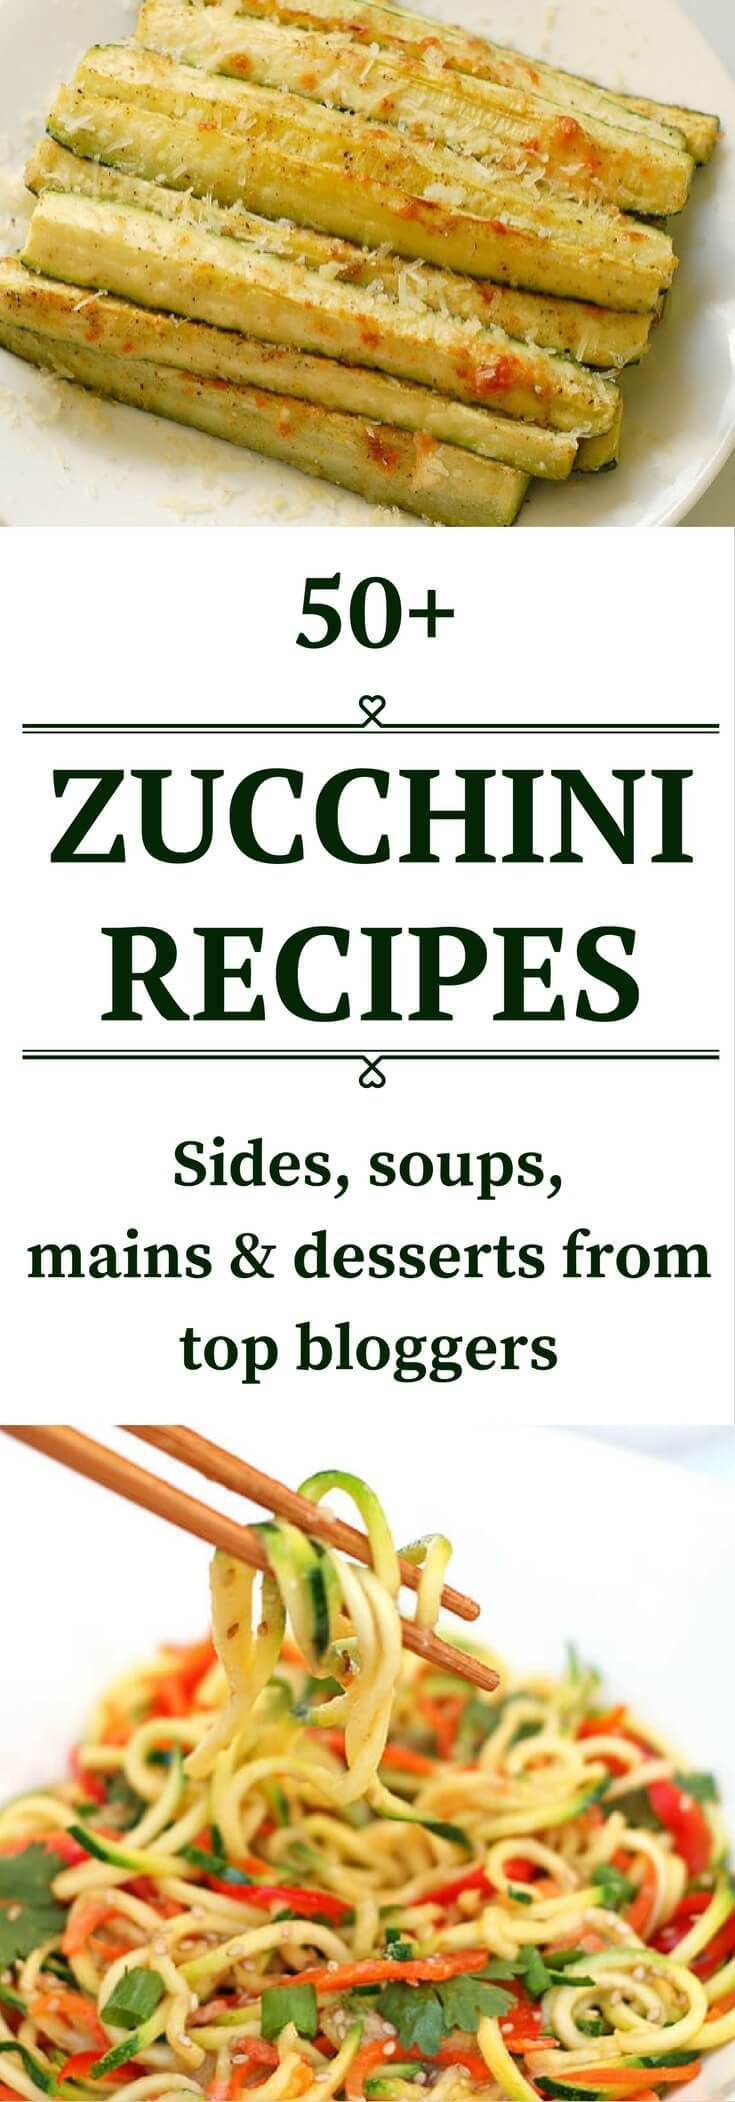 Zucchini recipes. Great ideas for your surplus zucchini from top bloggers. Click…